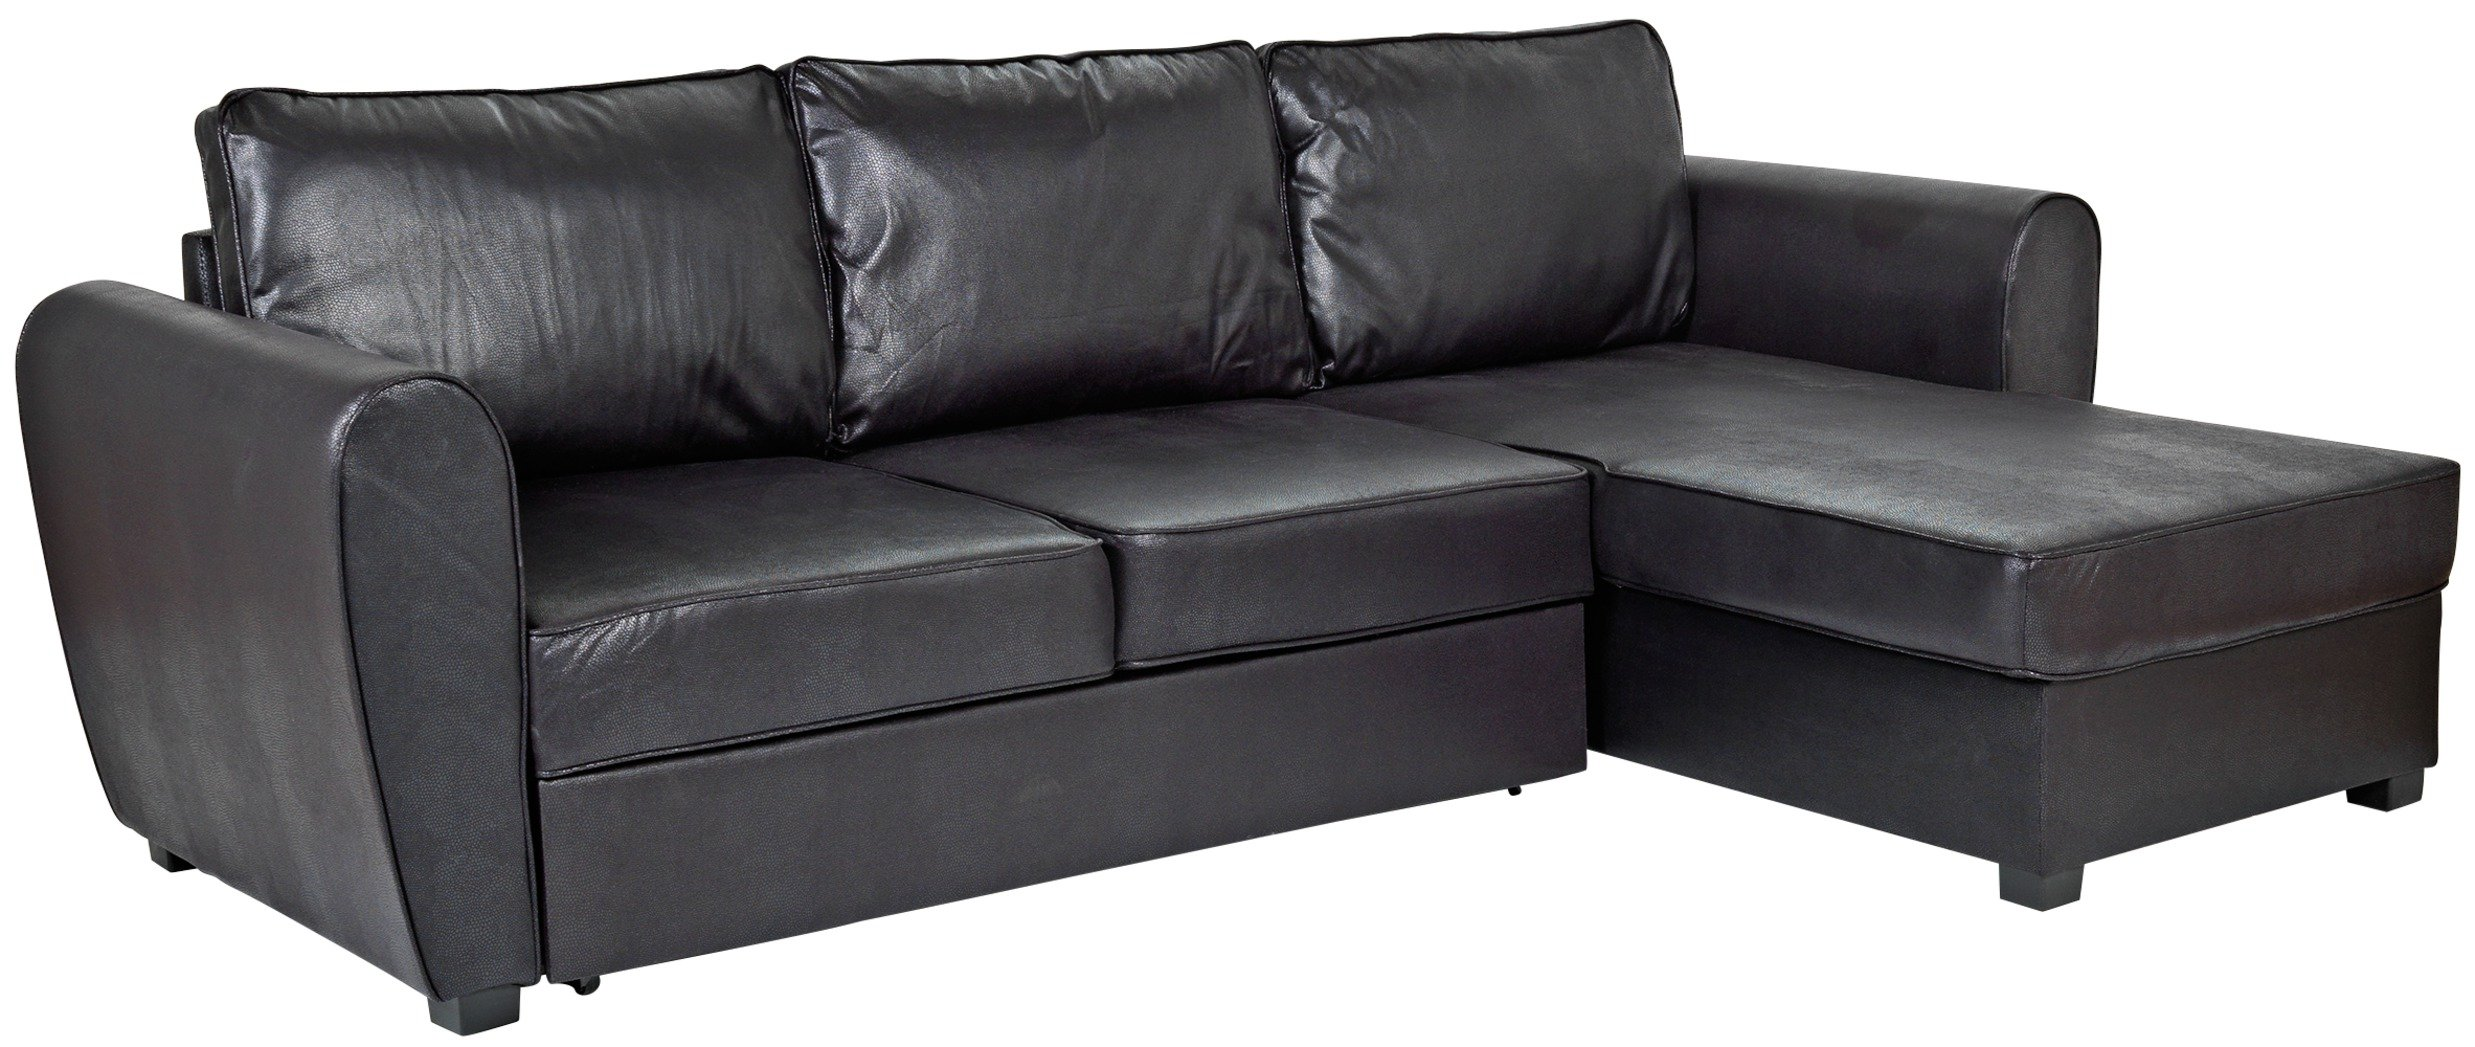 bunk beds with sofa bed underneath argos london cinema buy chair chairbeds and futons at co